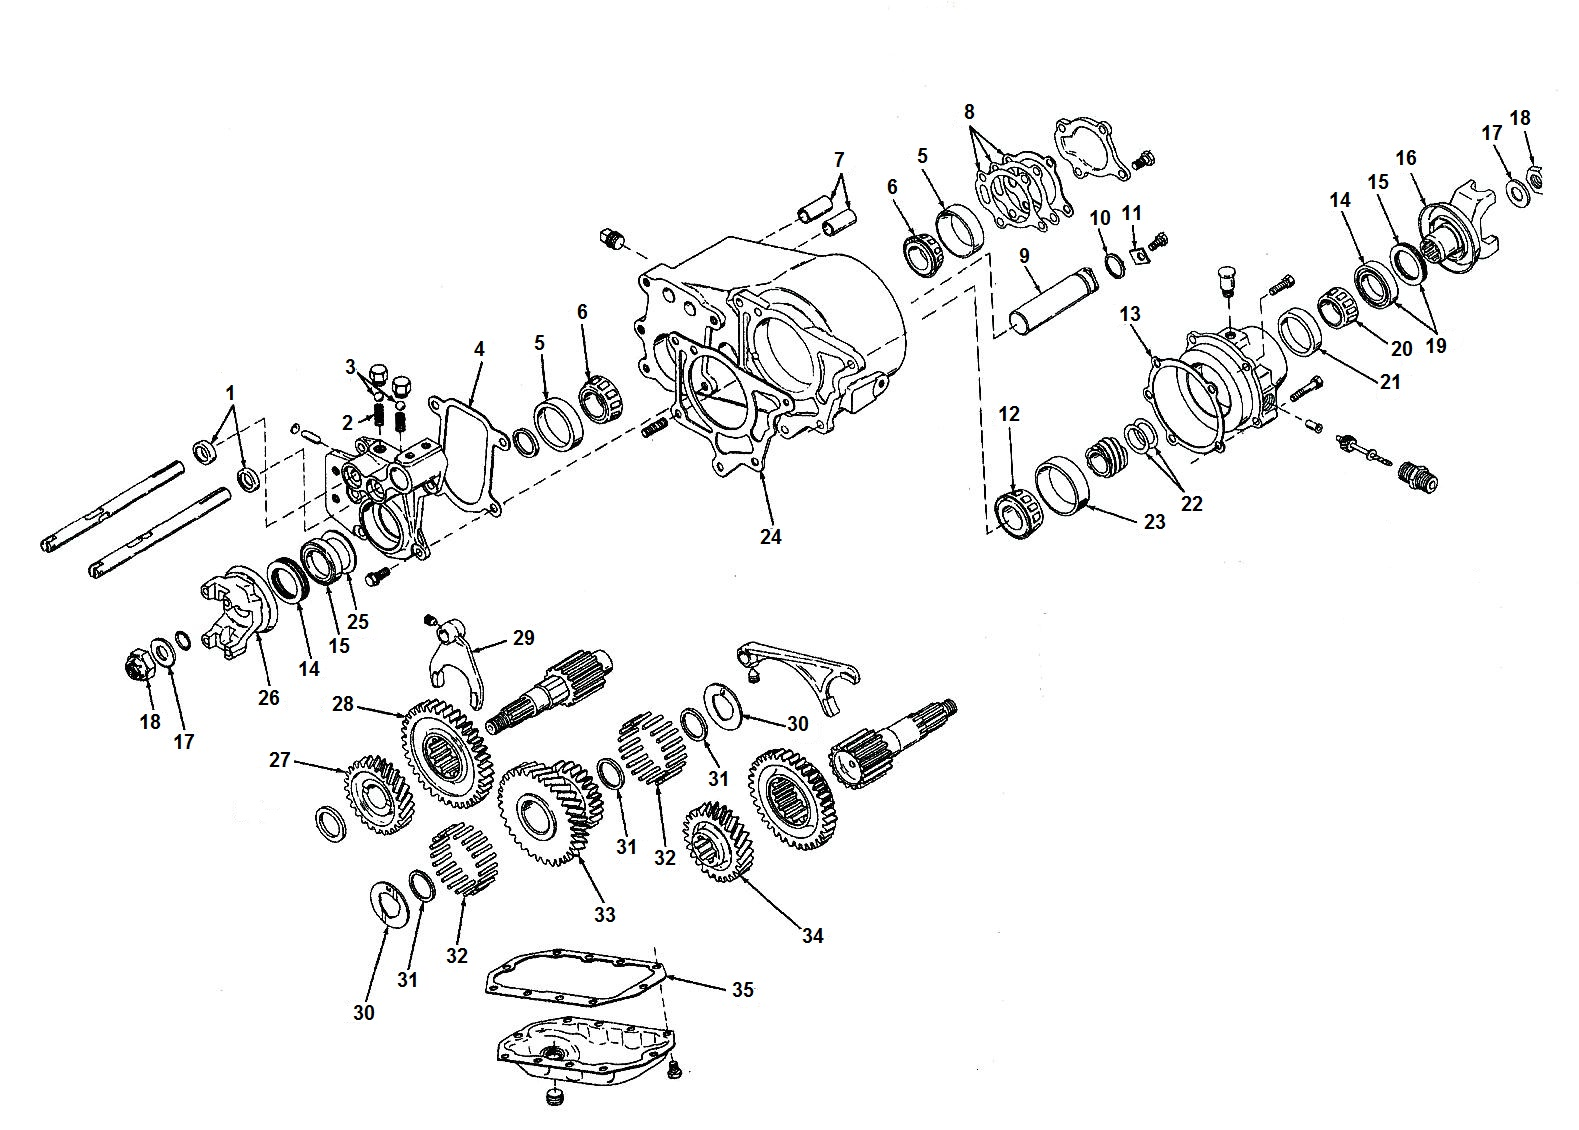 1978 Cj7 Part Diagram List Of Schematic Circuit Jeep Steering Column Wiring Dana Spicer 20 Transfer Case Parts From Midwest Willys Rh Midwestjeepwillys Com